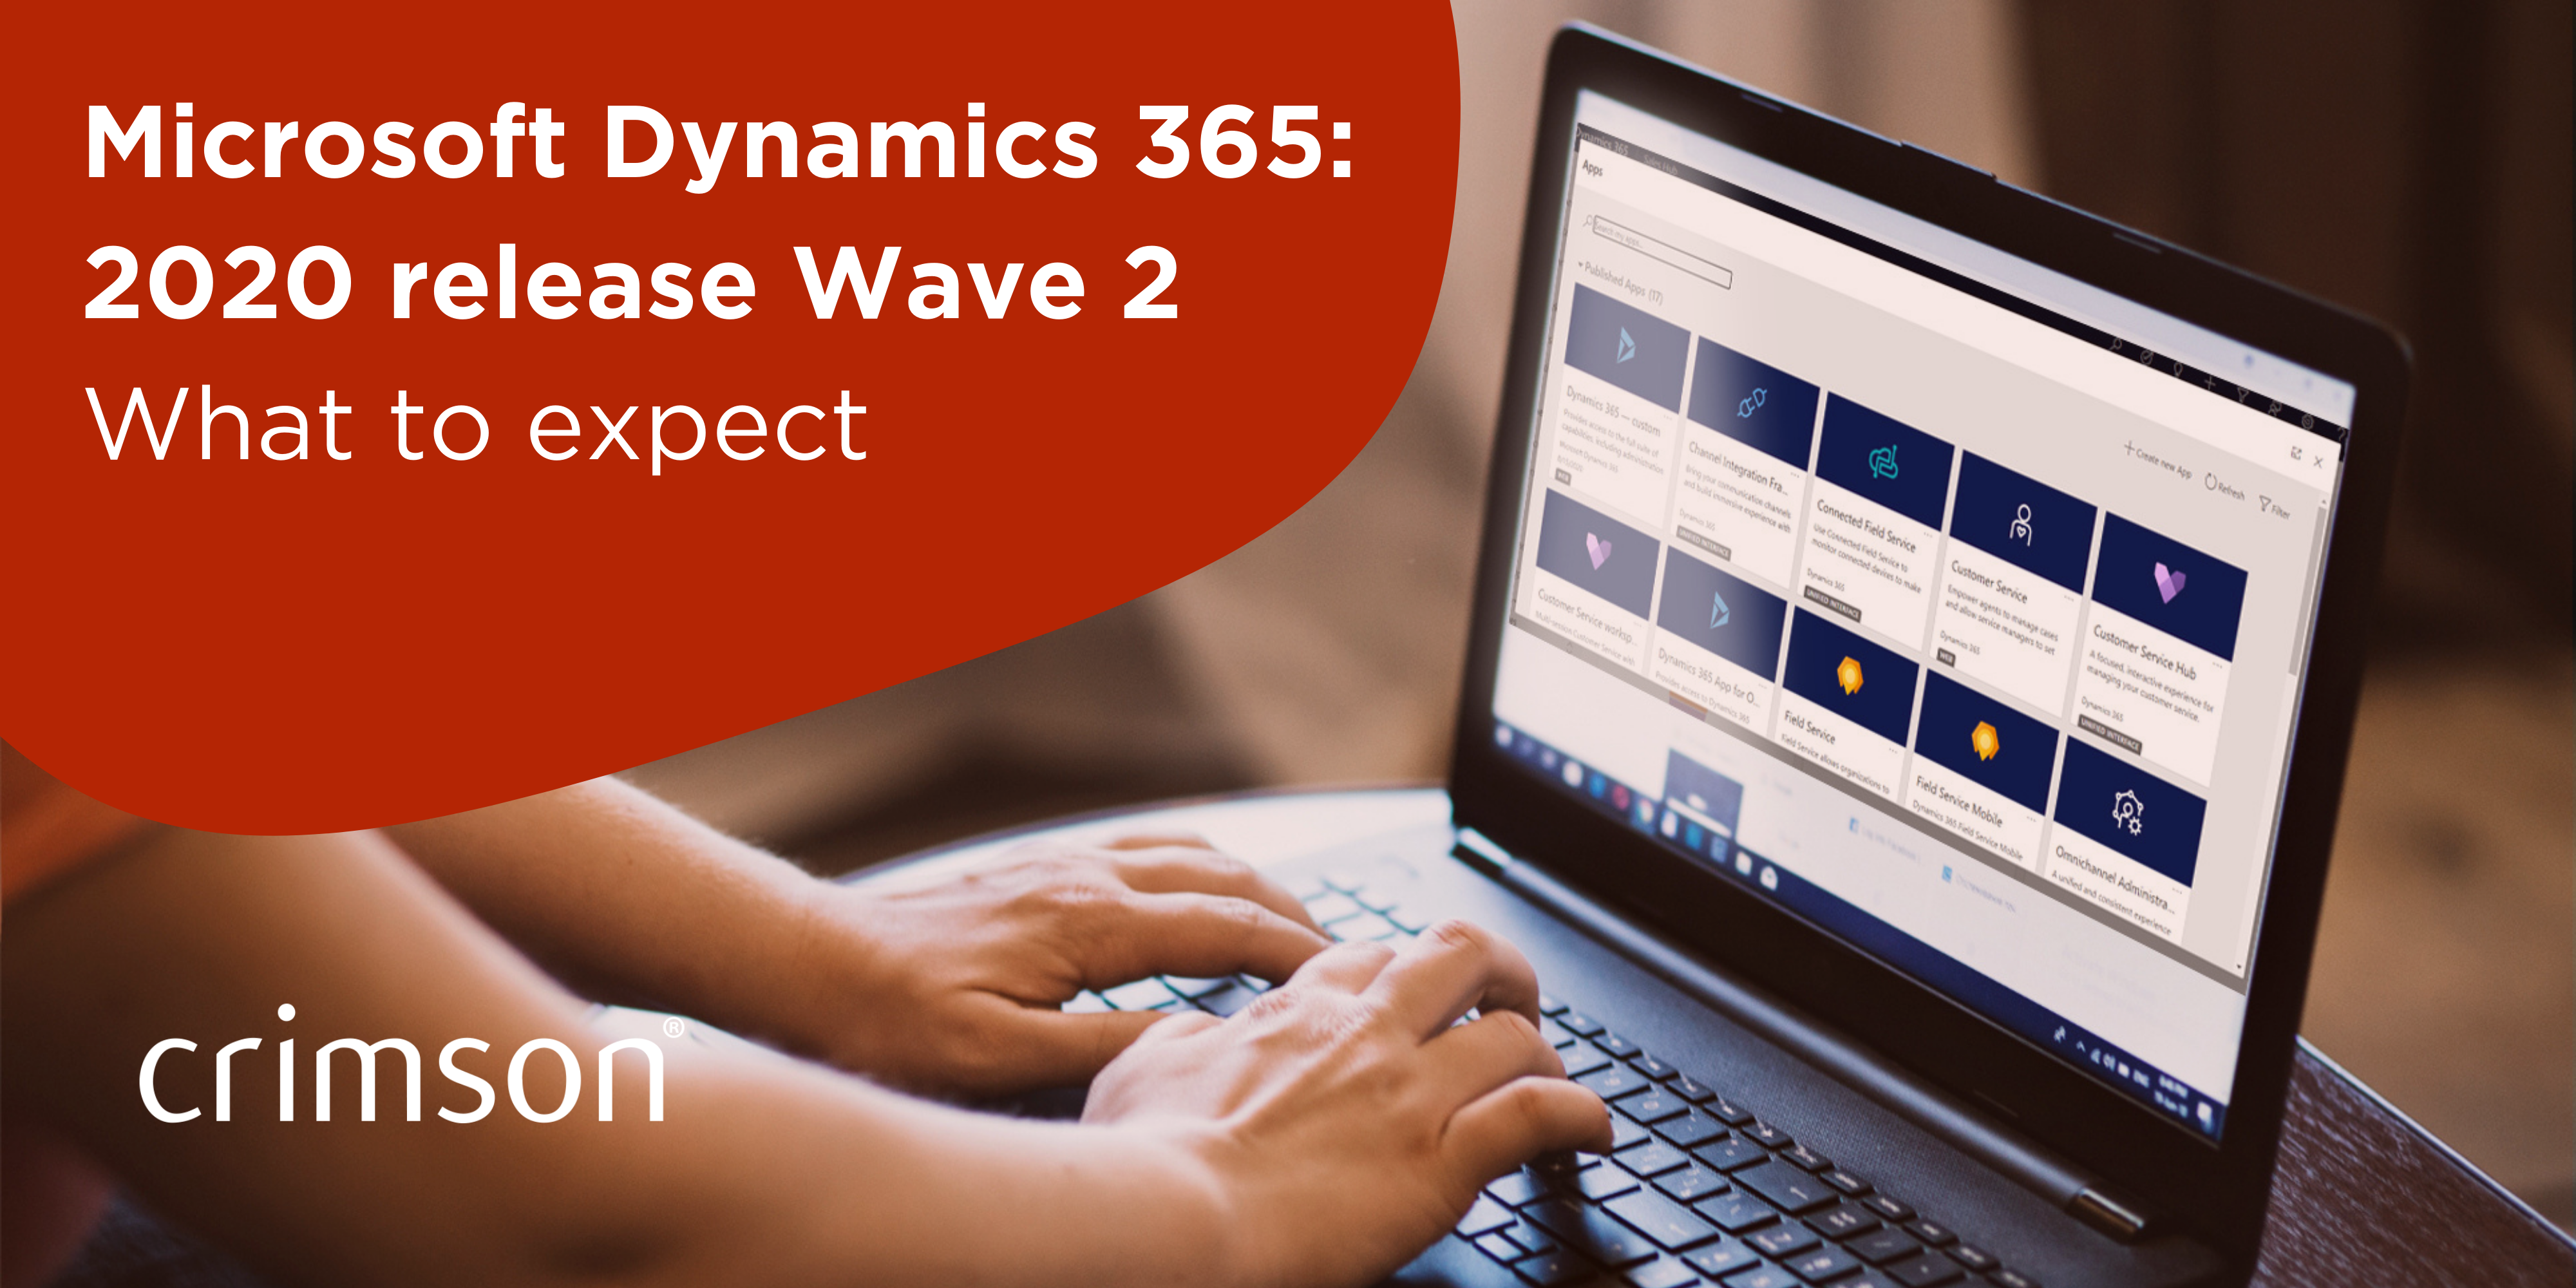 Dynamics 365 wave 2 update 2020